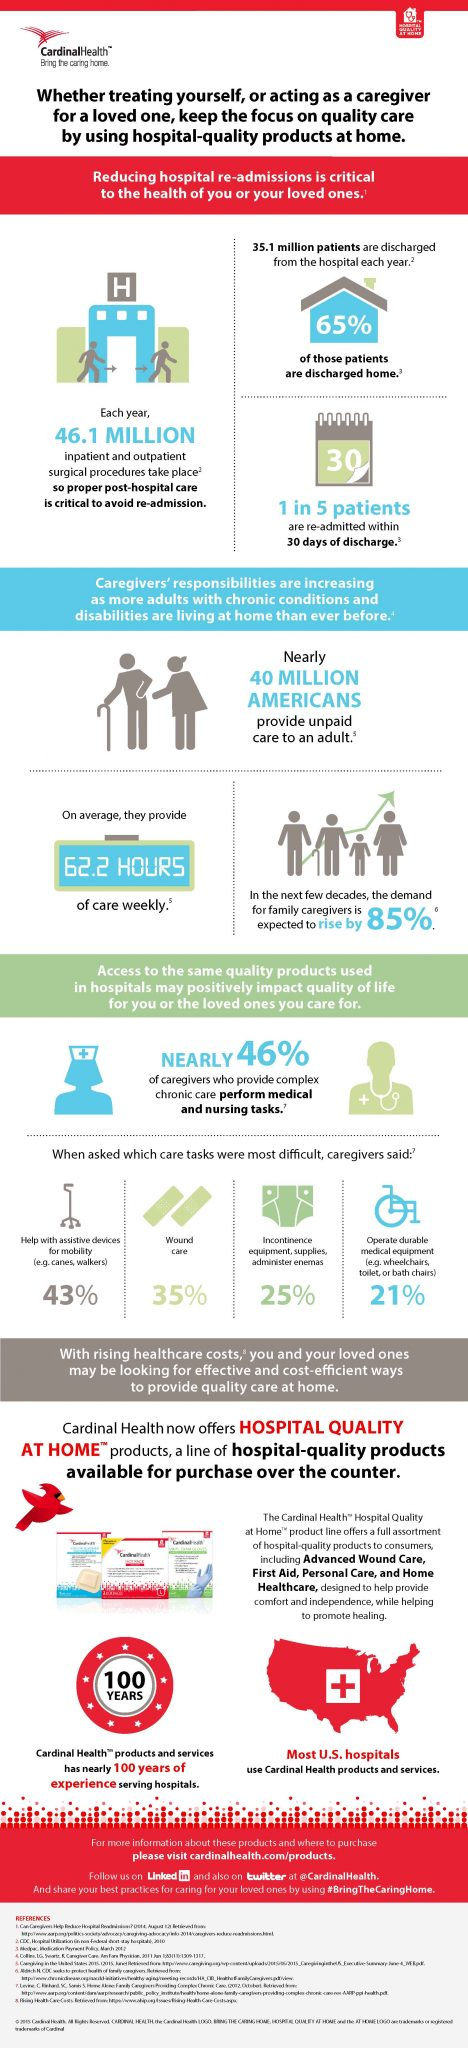 Cardinal Health HQAH Infographic